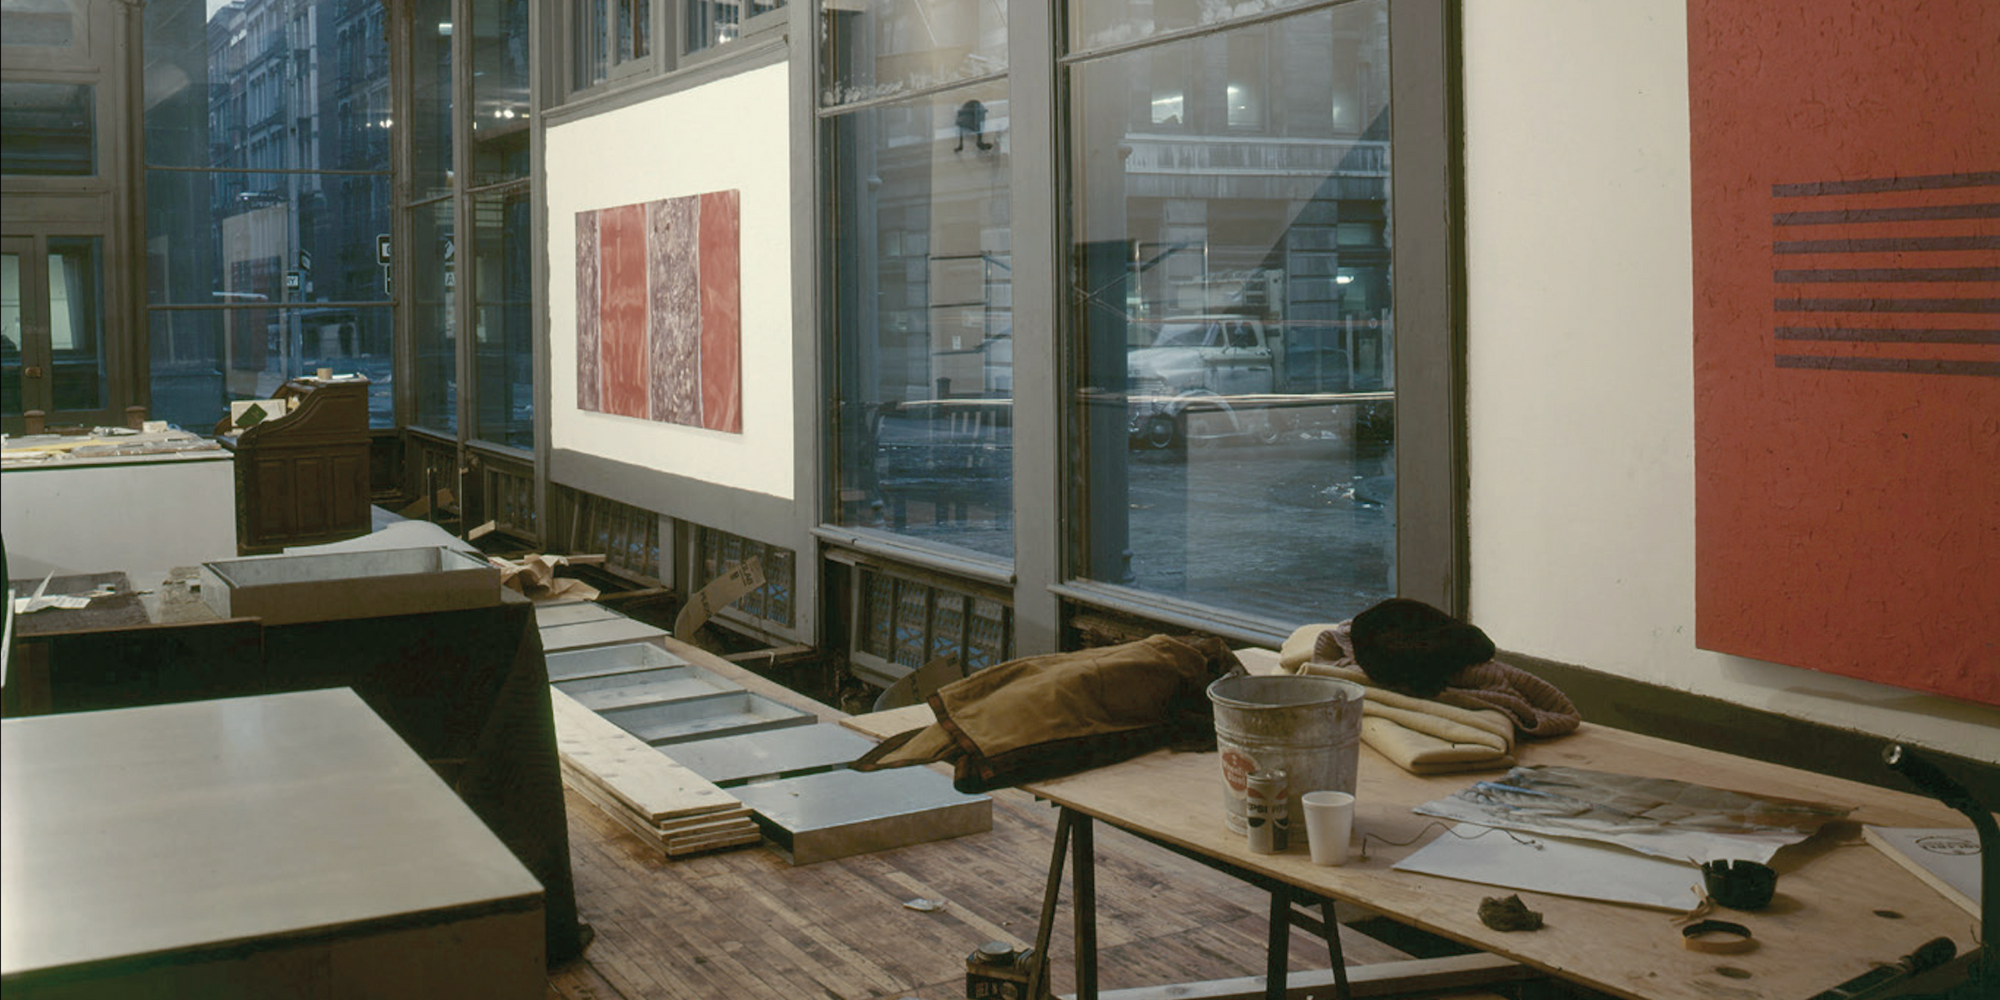 Judd's home and studio building, 101 Spring Street, New York, c. 1969. Photograph by Paul Katz. © 2020 Judd Foundation/Artists Rights Society (ARS), New York